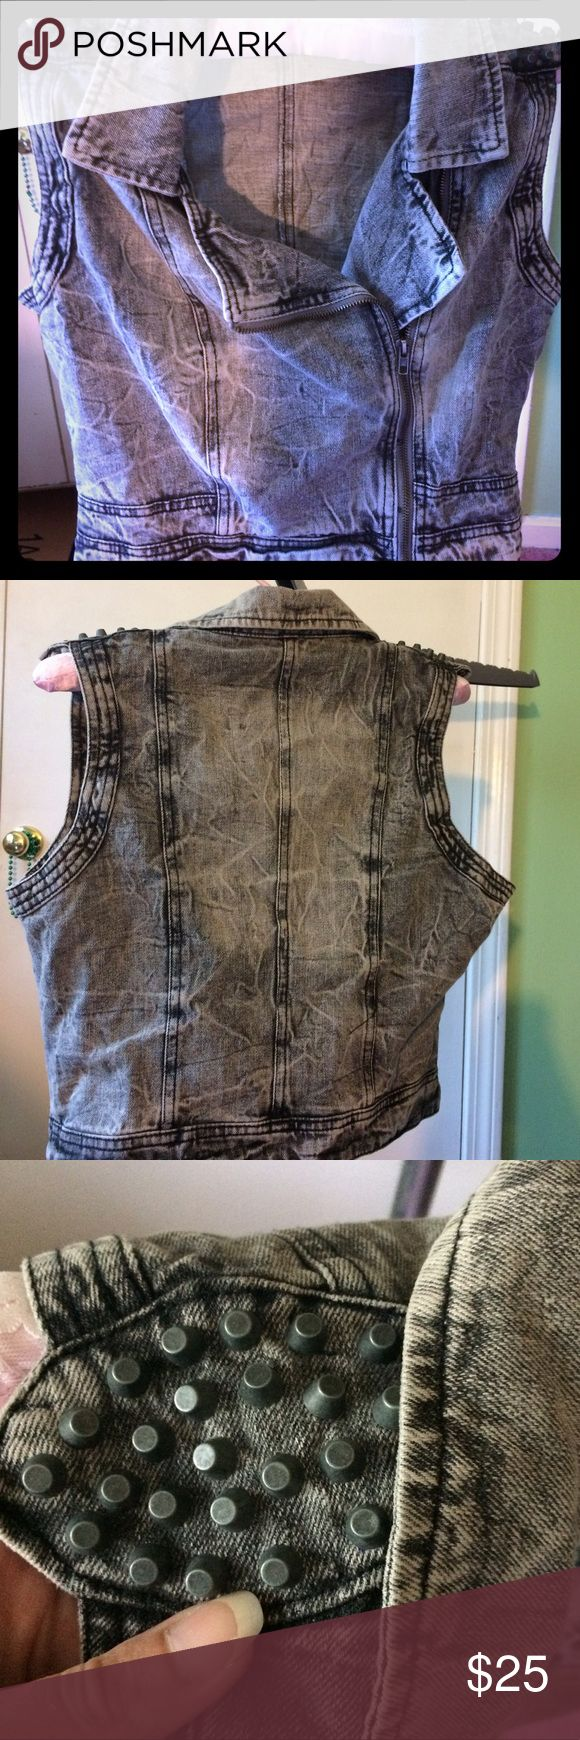 Highway jeans studded faded denim vest Highway jeans studded faded denim vest. Size L, hits about mid waist. Zipper closure. Gently used, you'd almost think it was brand new! Highway Jeans Jackets & Coats Vests